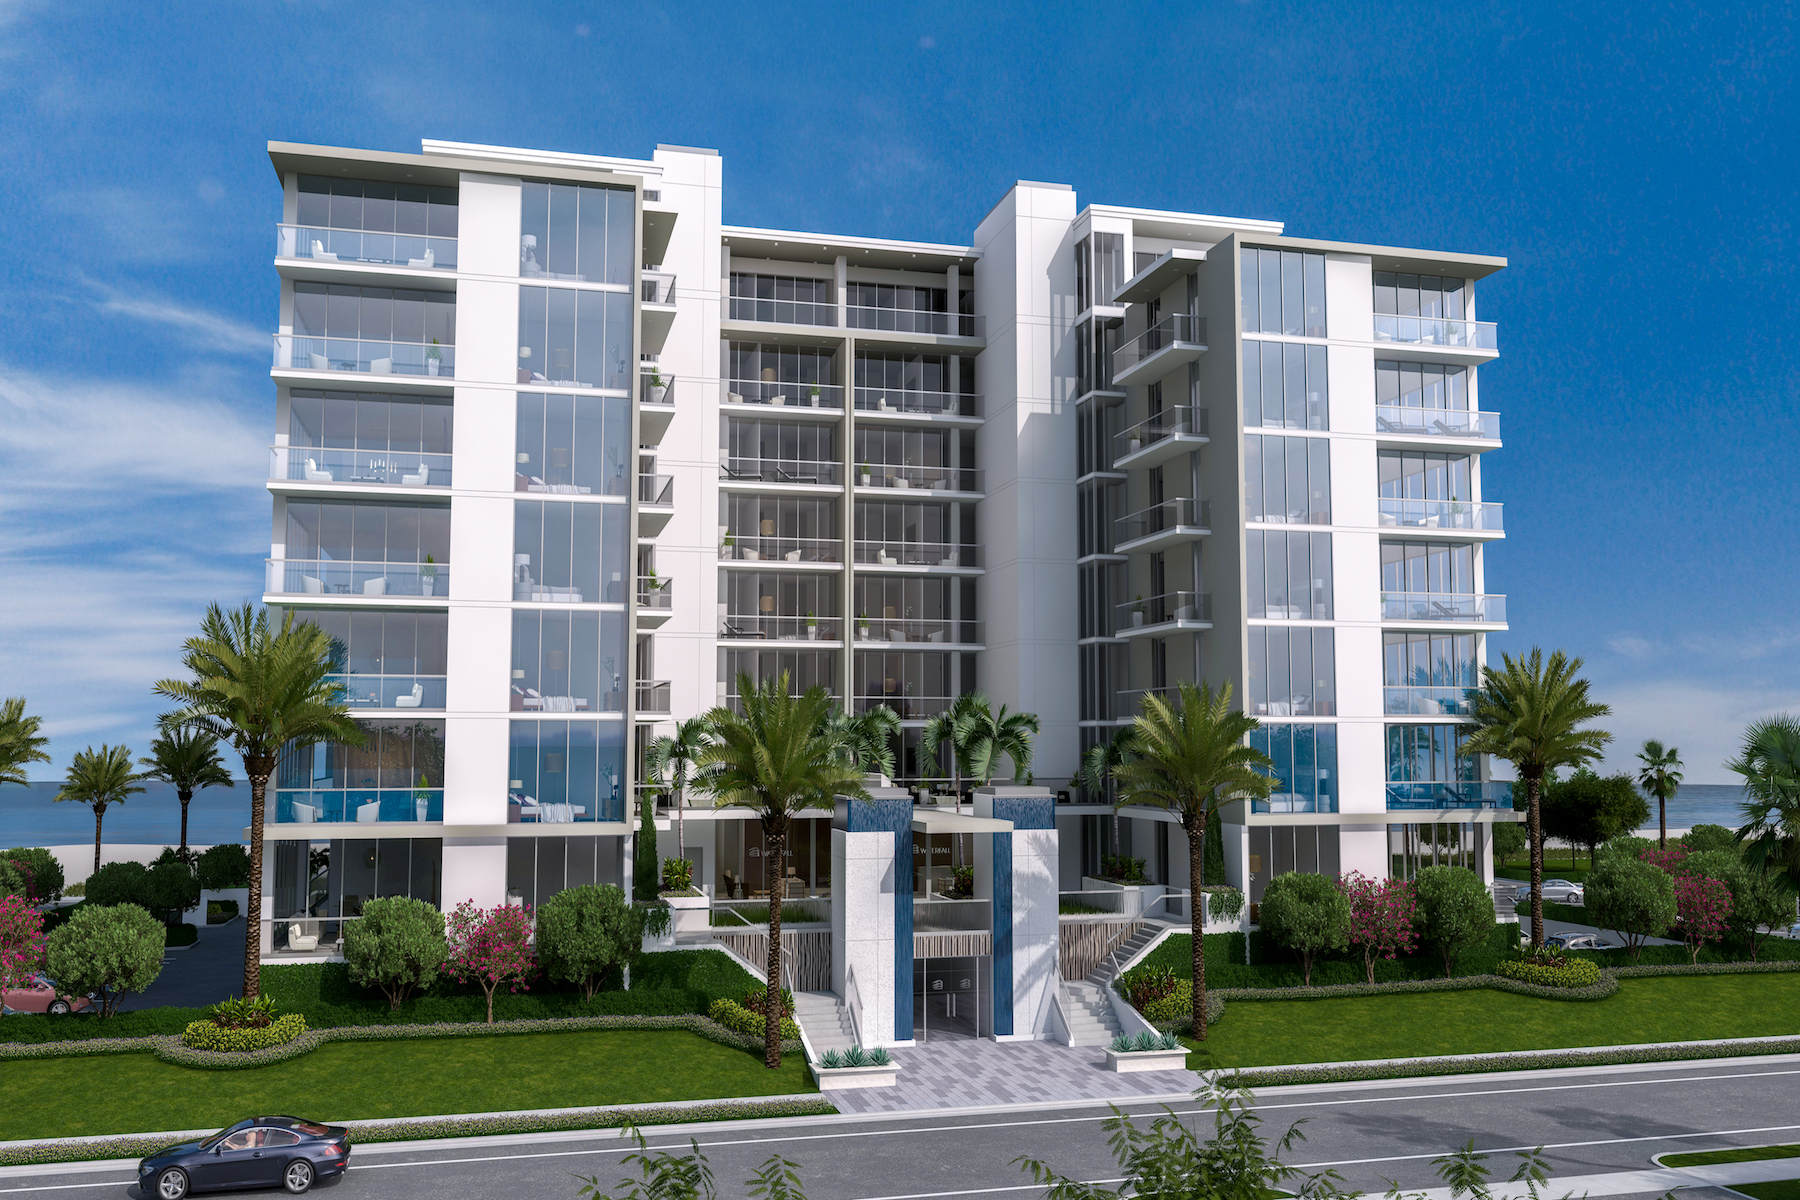 Condominiums for Sale at Pre-Constructed Condo with Ocean View 1401 1st Street S STE 304 Jacksonville Beach, Florida 32250 United States